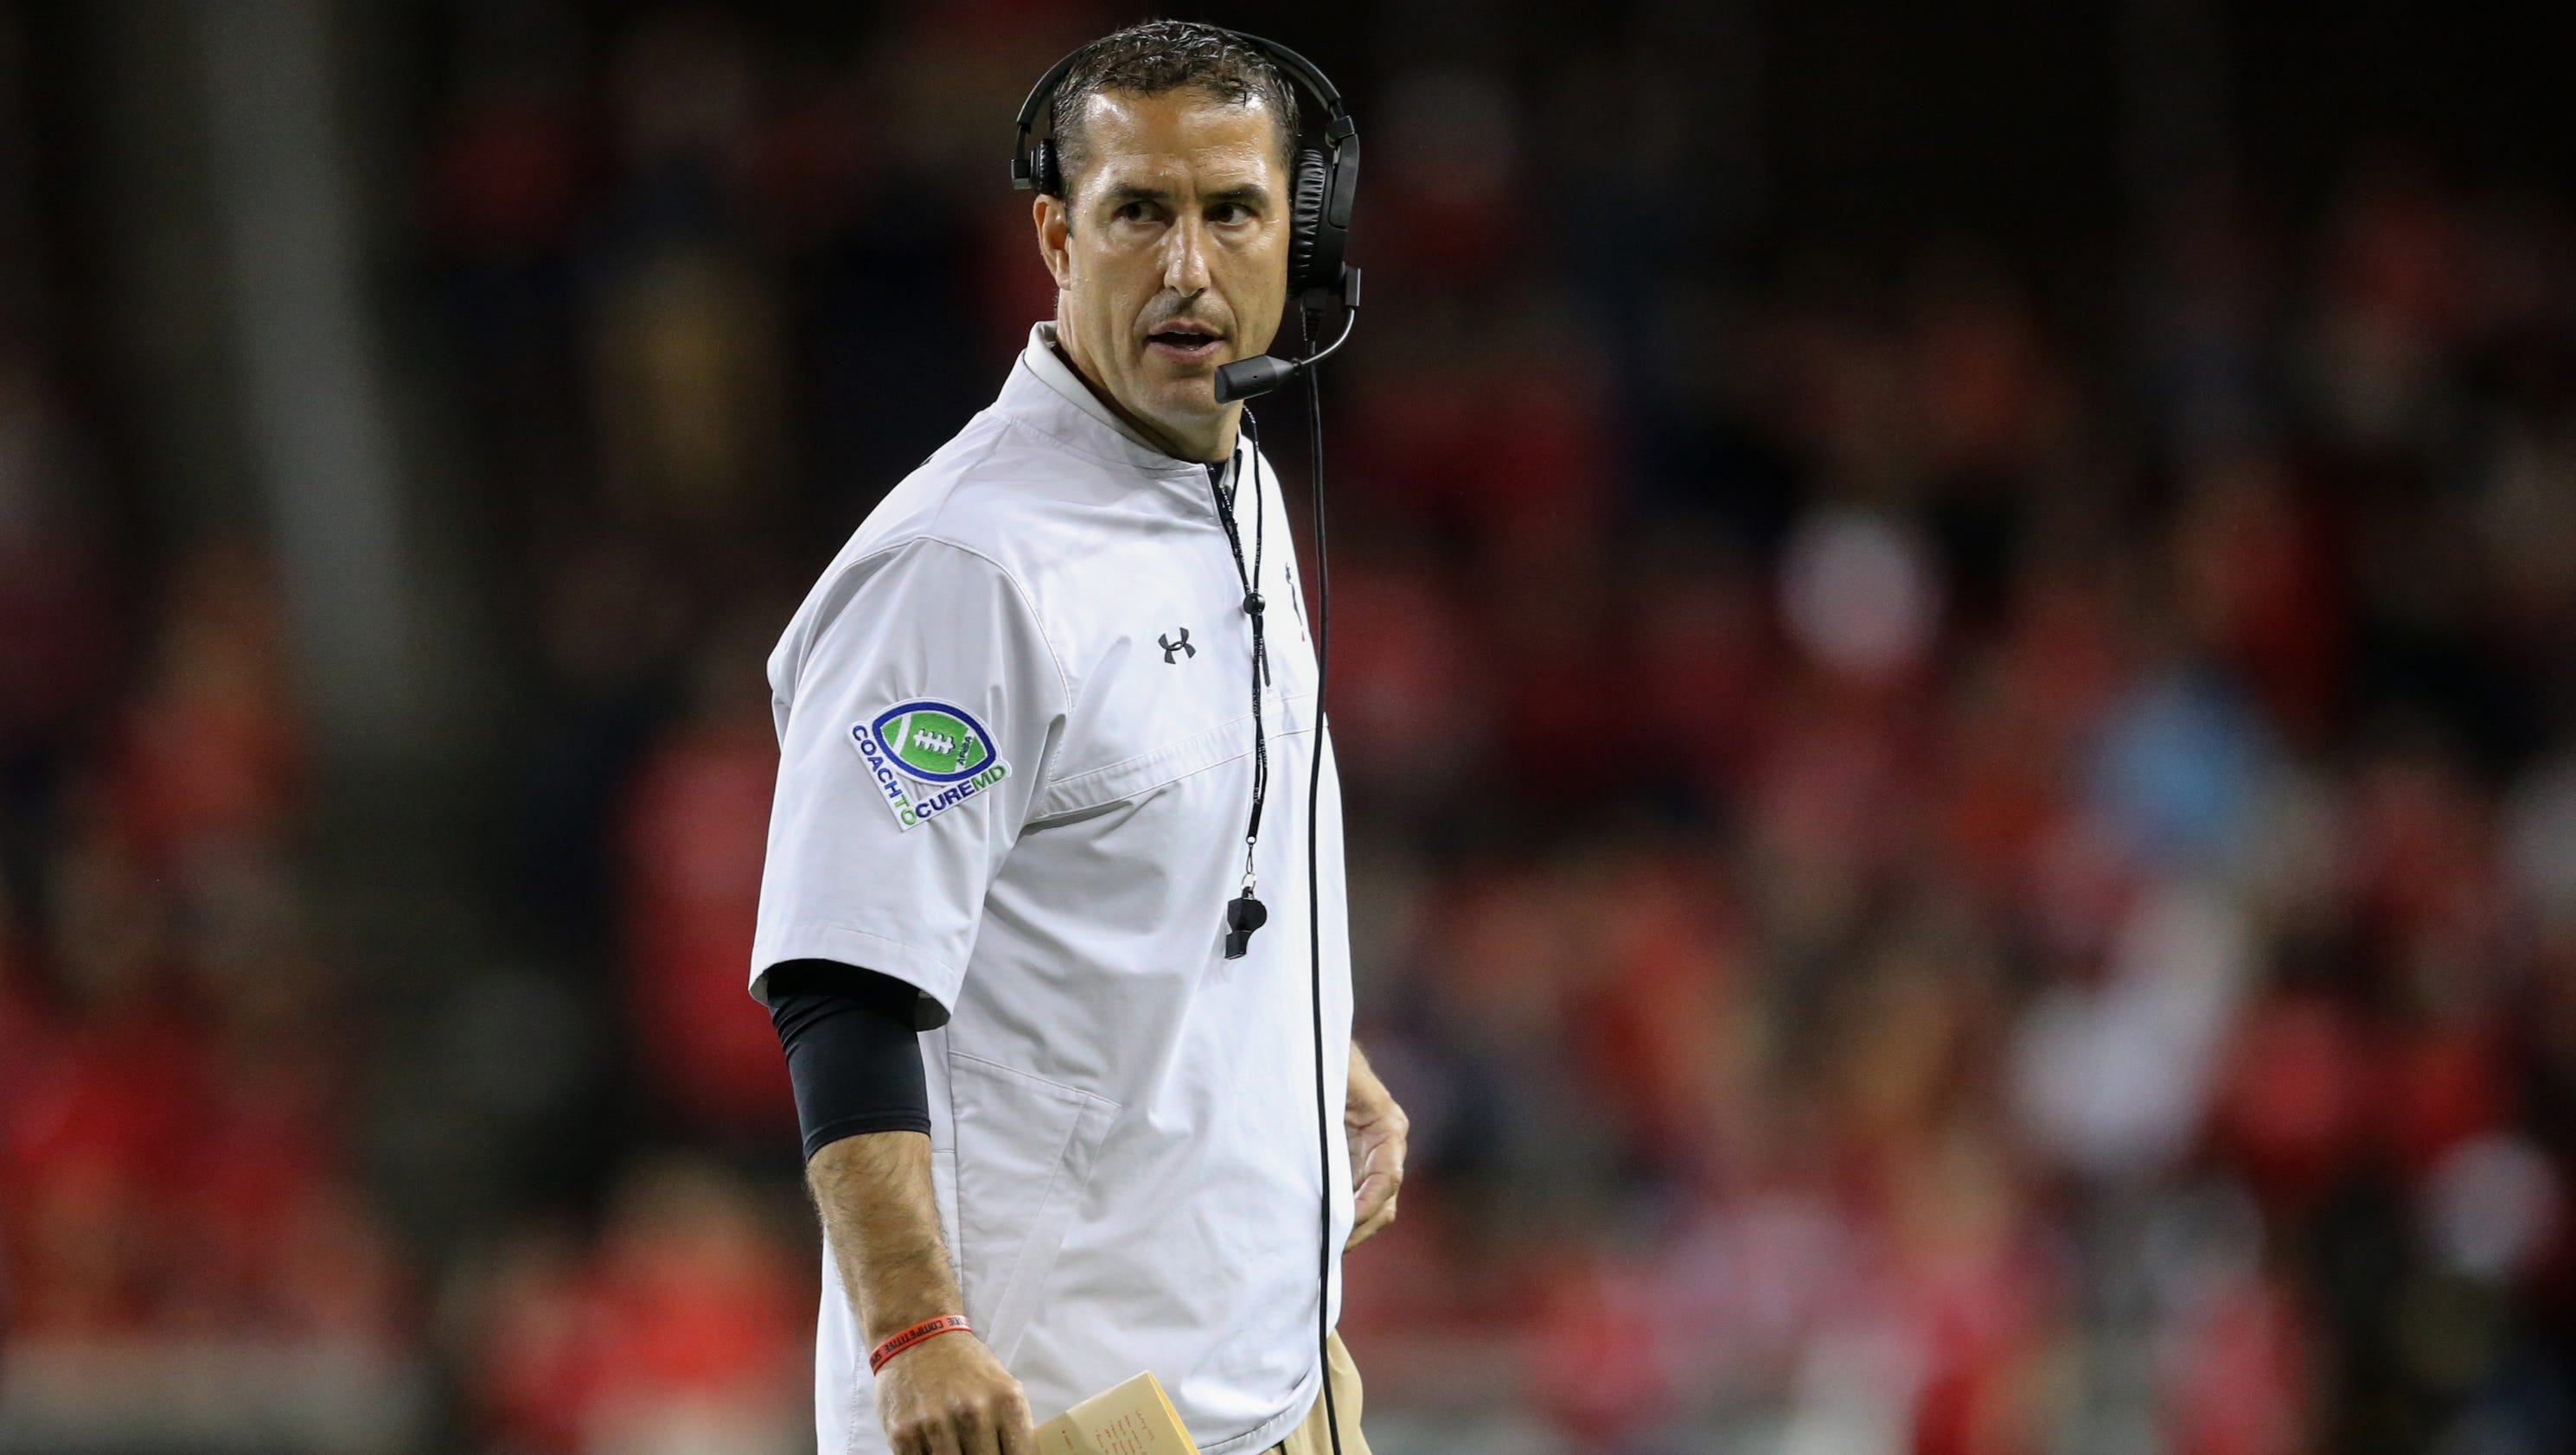 Luke fickell on uc coaching stay 39 it 39 s been difficult 39 for Marshalls cincinnati oh